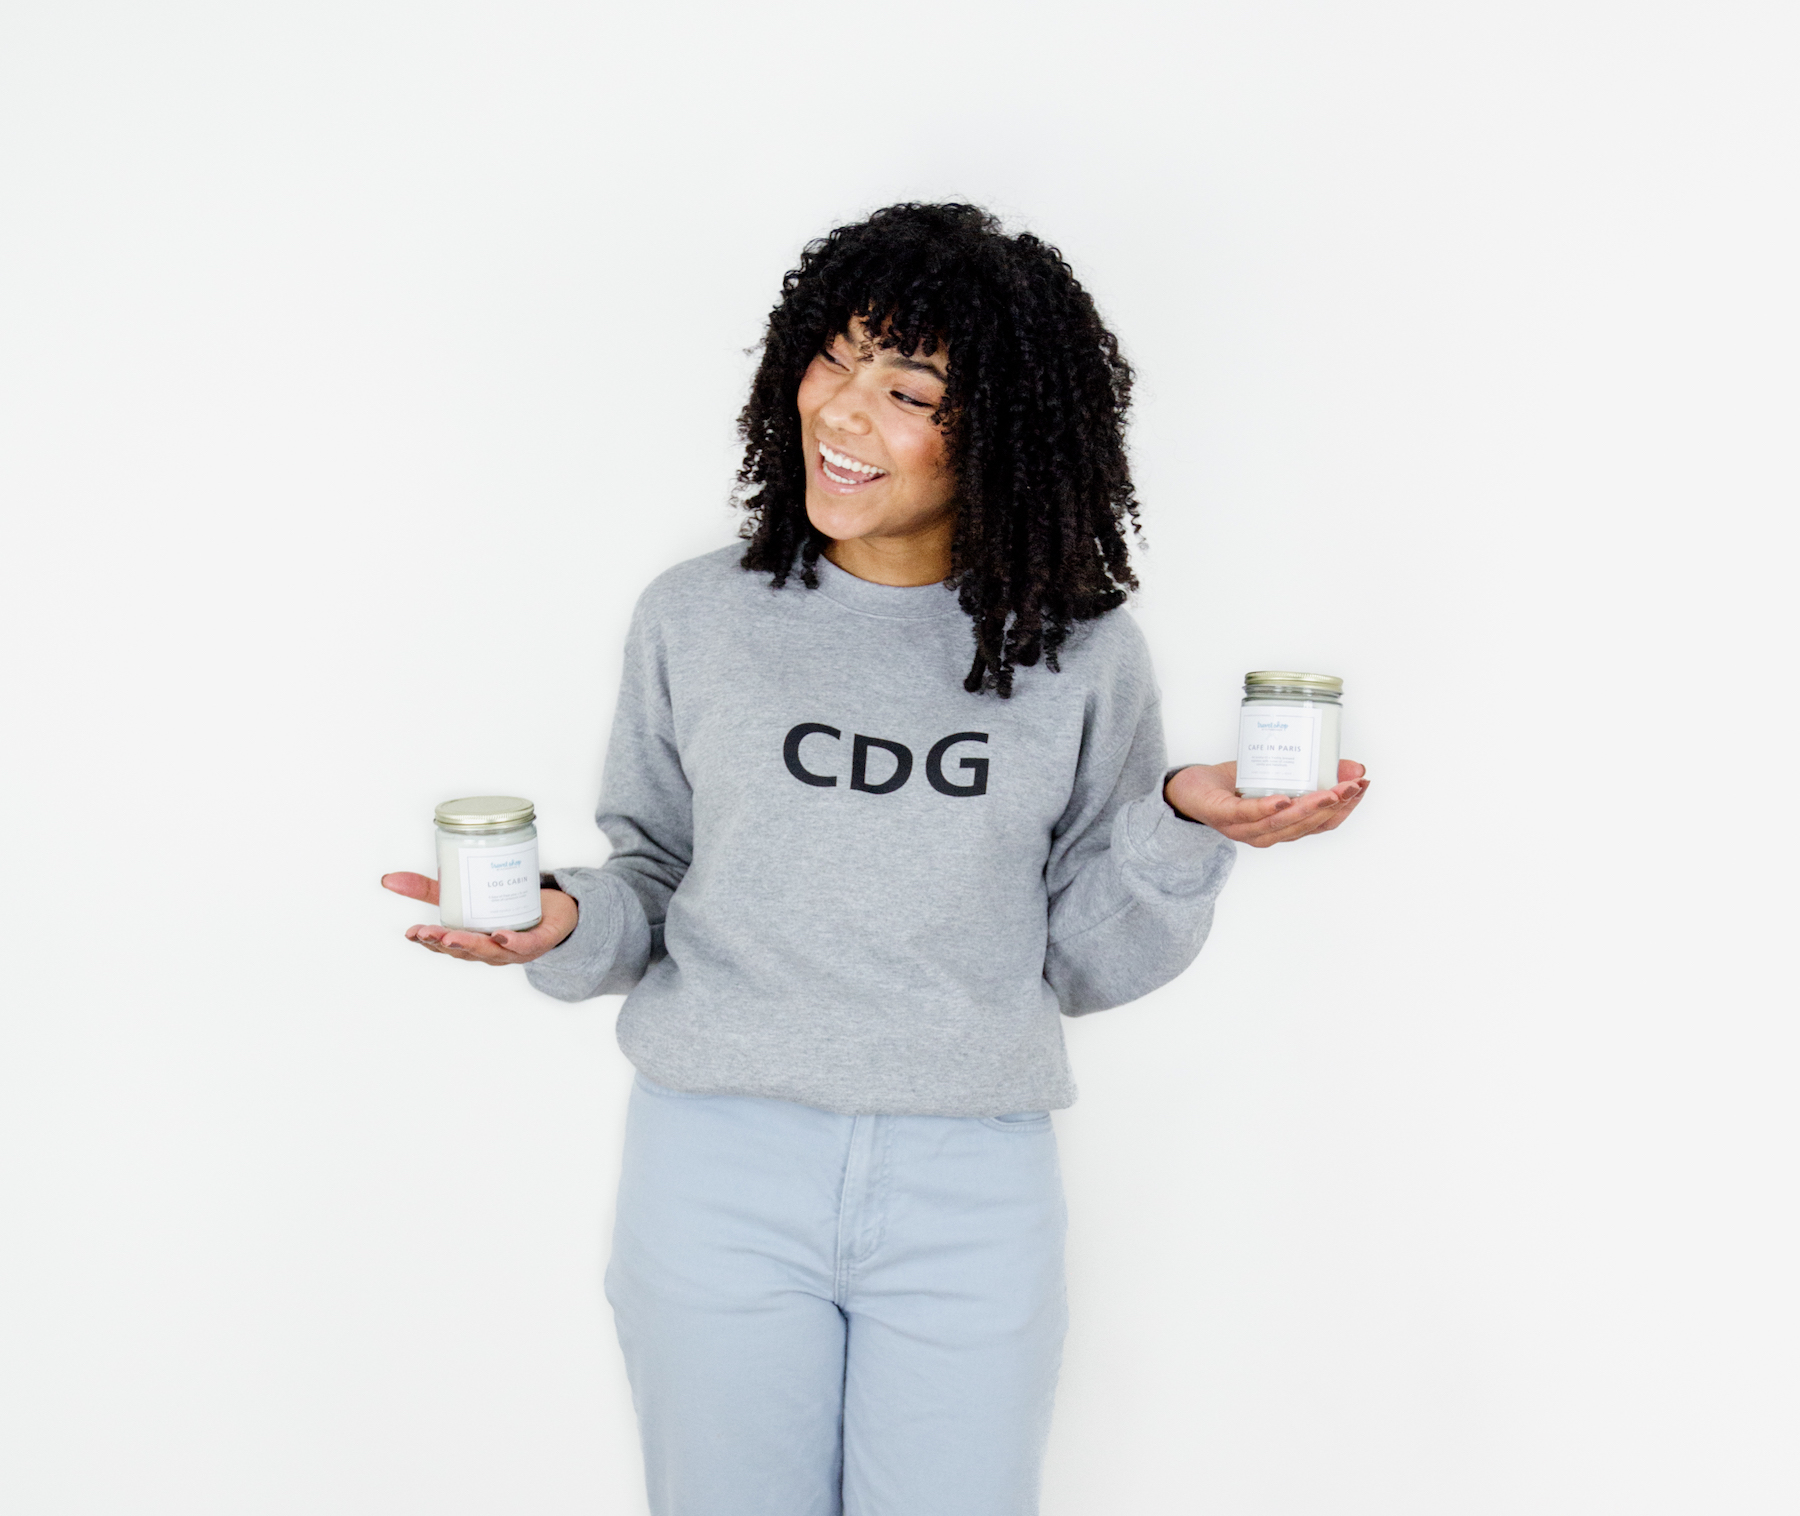 Travel-inspired honeymoon wedding gifts, Paris CDG Airport Code Crewneck, Travel-inspired Candles